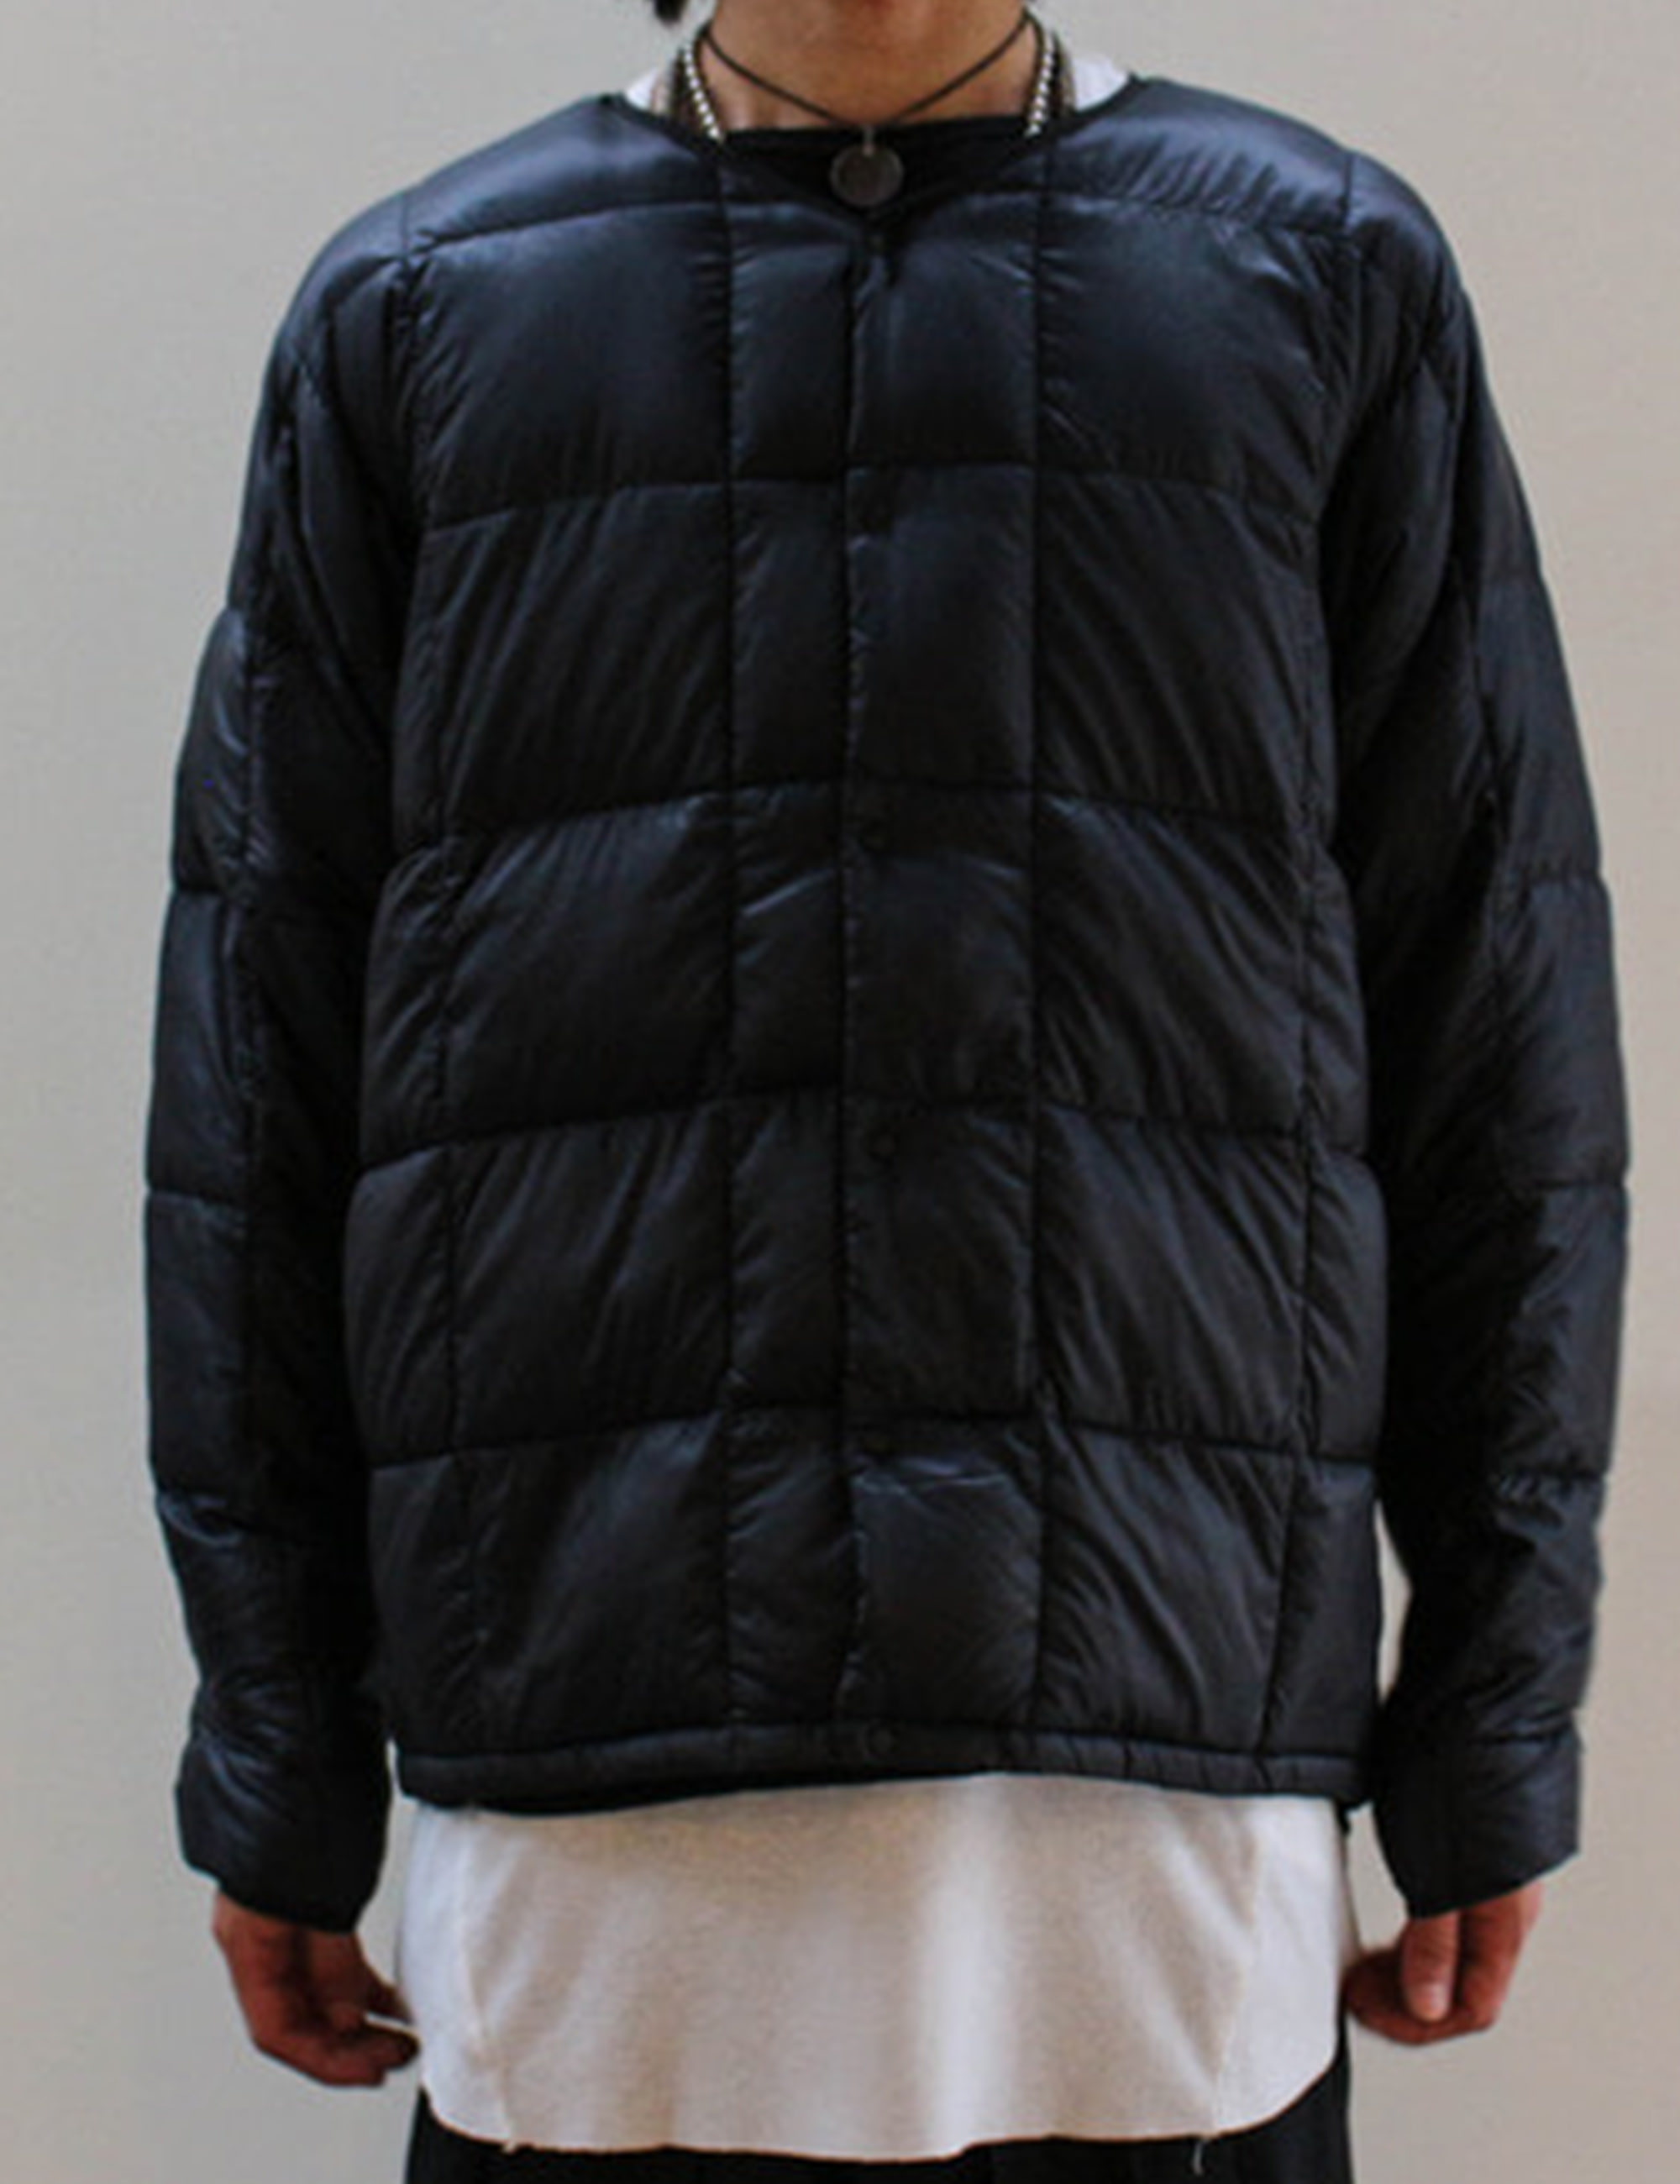 INNER DOWN JACKET_BLACK